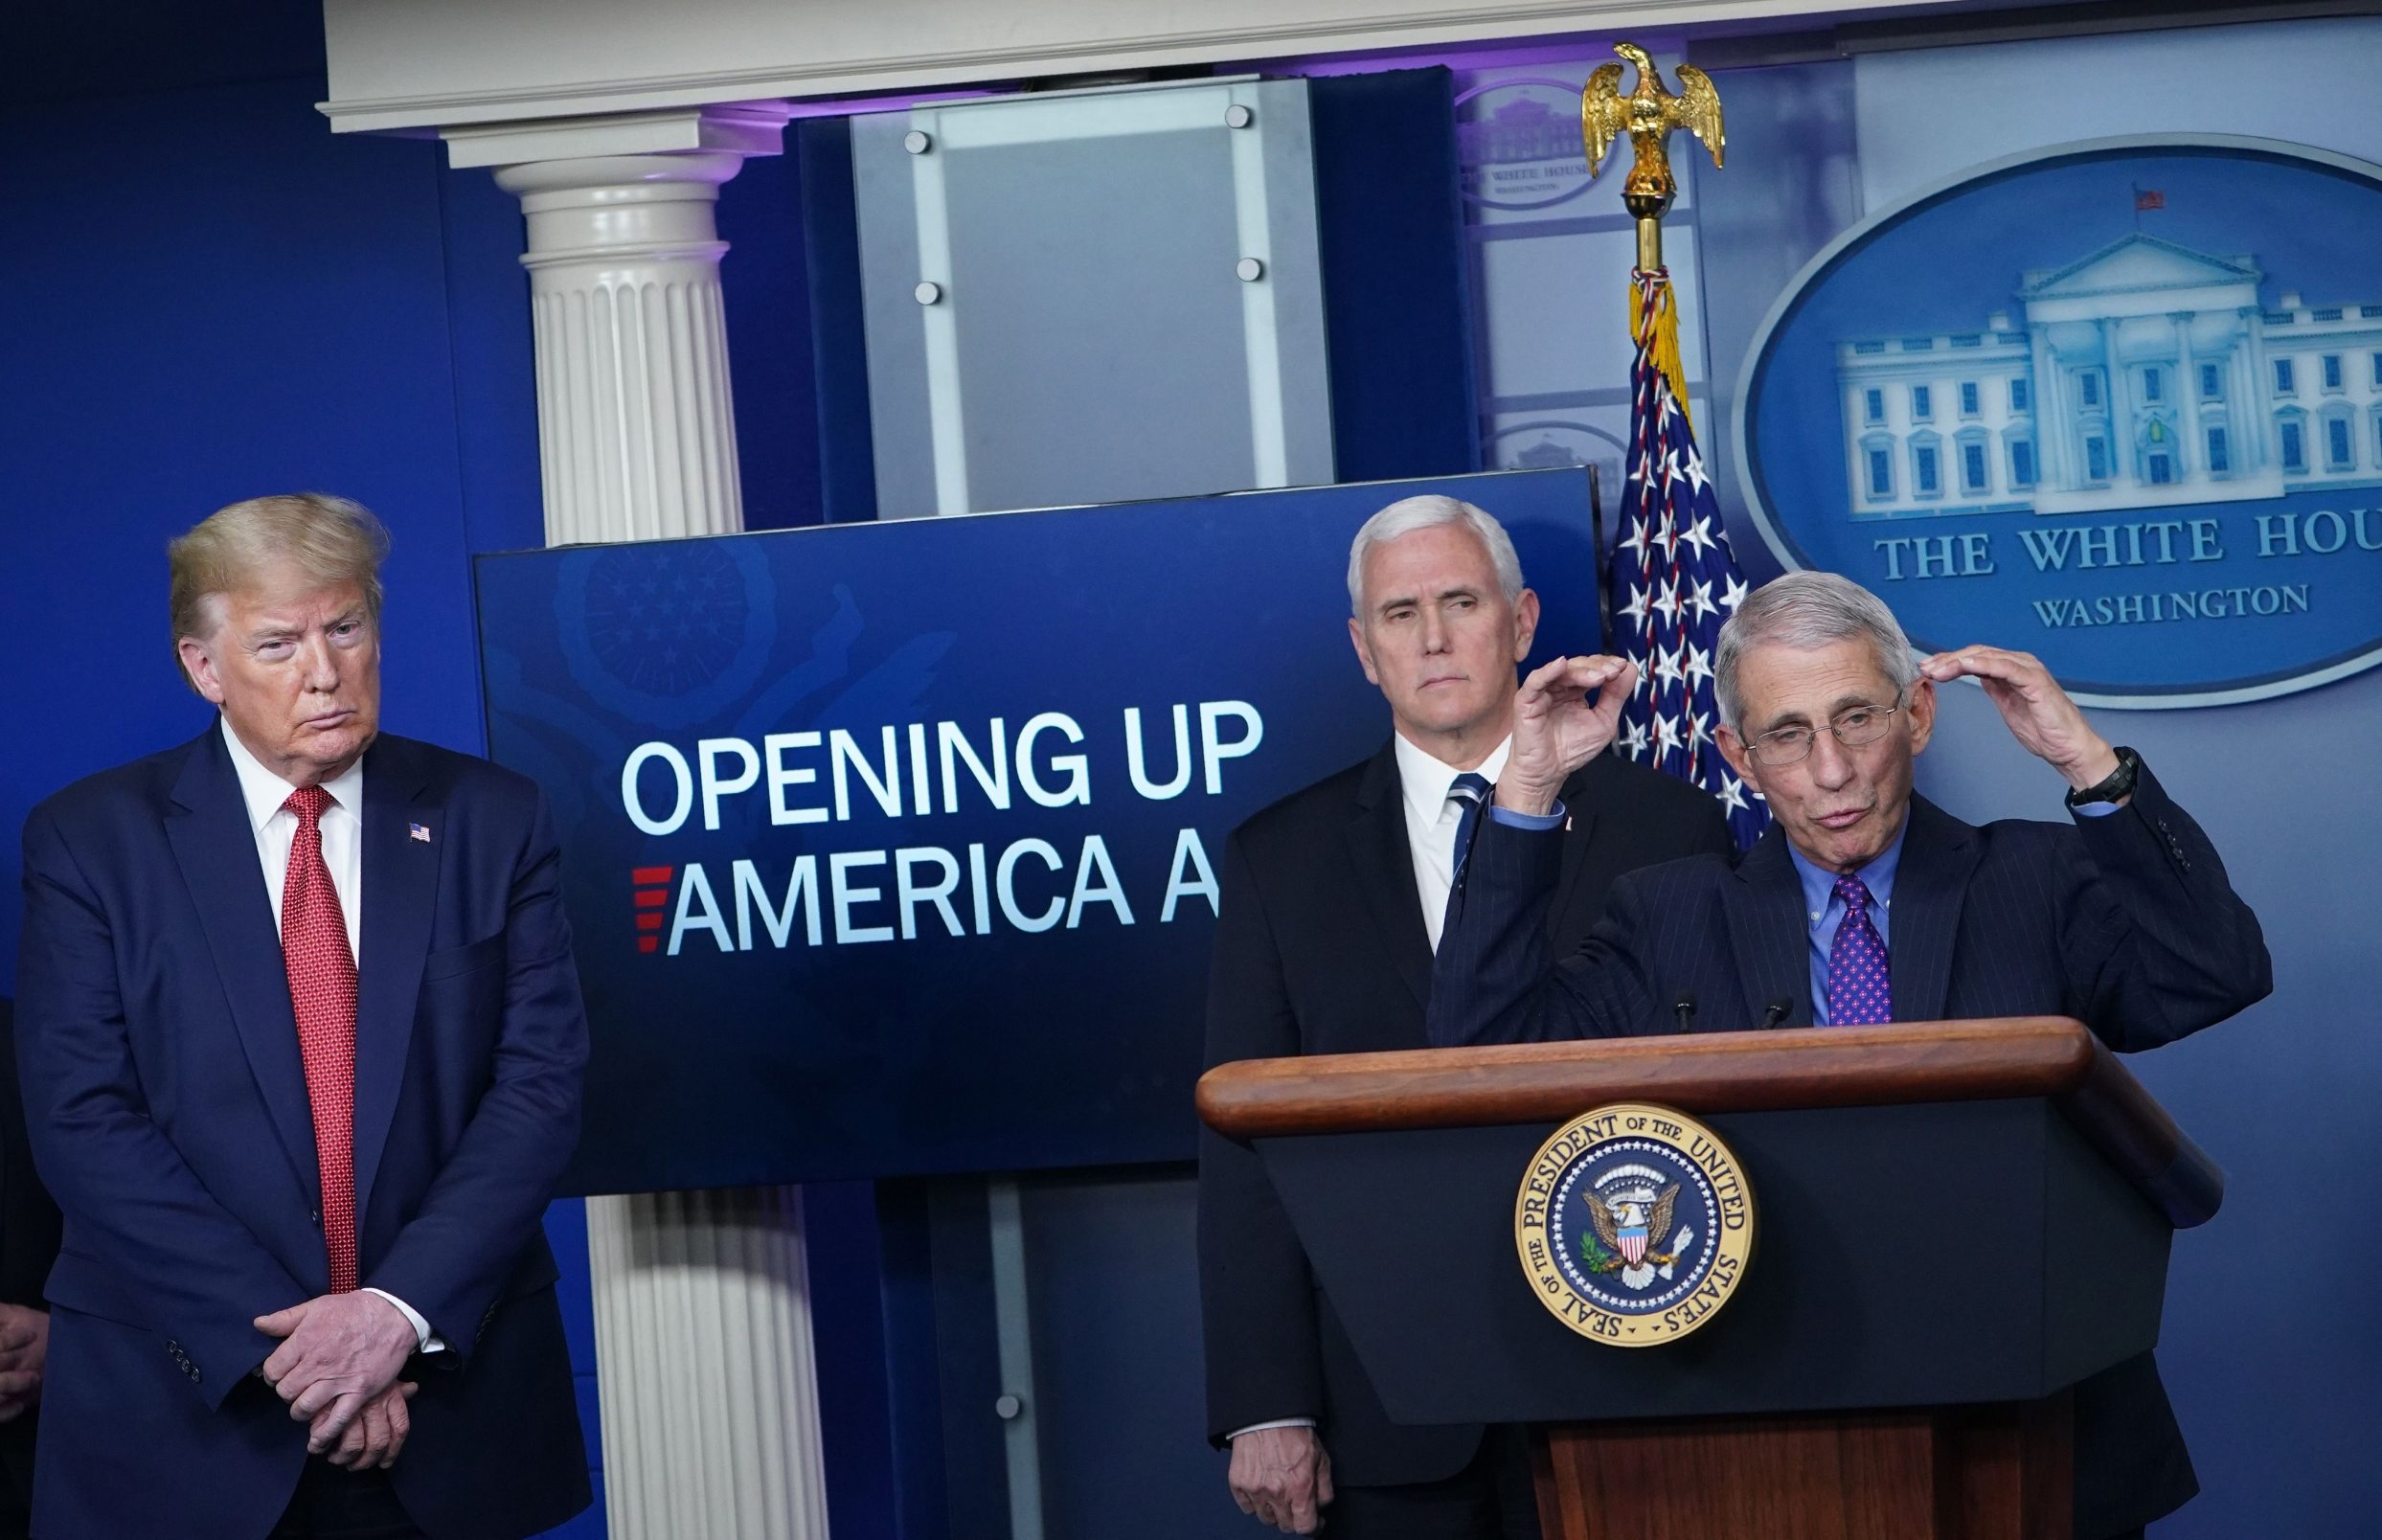 Director of the National Institute of Allergy and Infectious Diseases Anthony Fauci speaks as US President Donald Trump and US Vice President Mike Pence listen during the daily briefing on the novel coronavirus, which causes COVID-19, in the Brady Briefing Room of the White House on April 16, 2020, in Washington, DC. (Photo by MANDEL NGAN / AFP)